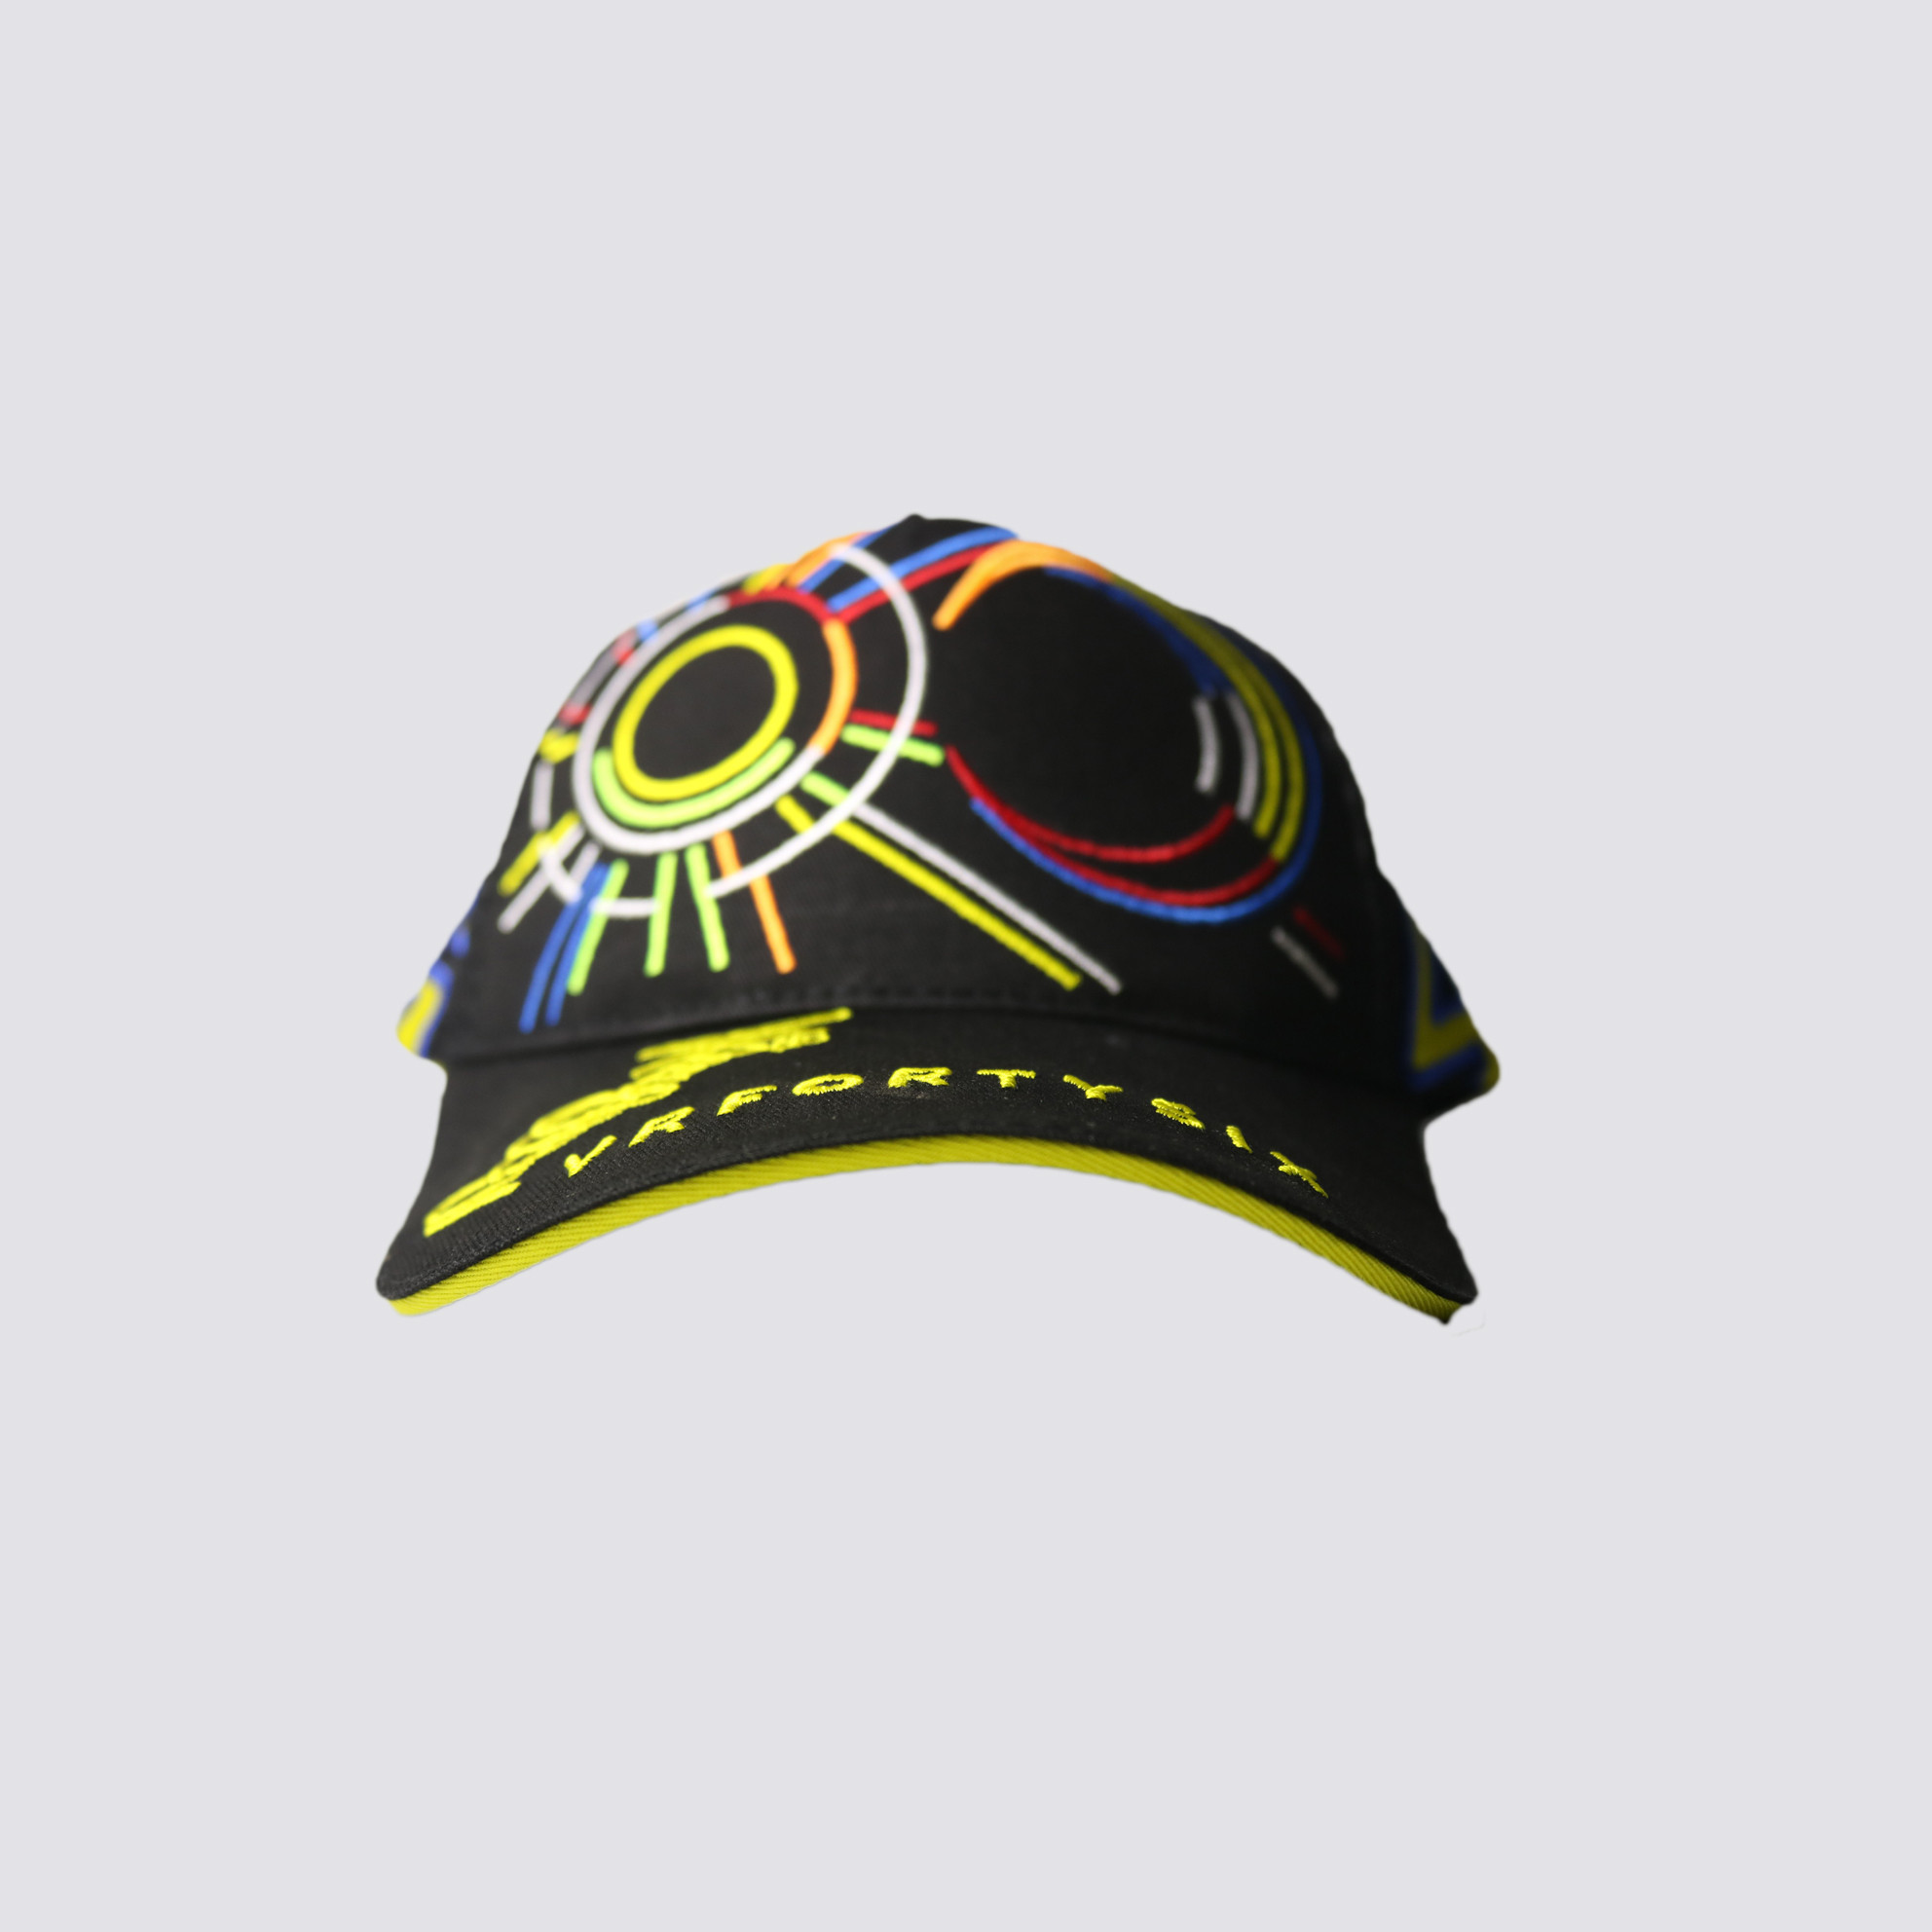 Snap Back Cap - VR46 (Black and Yellow)